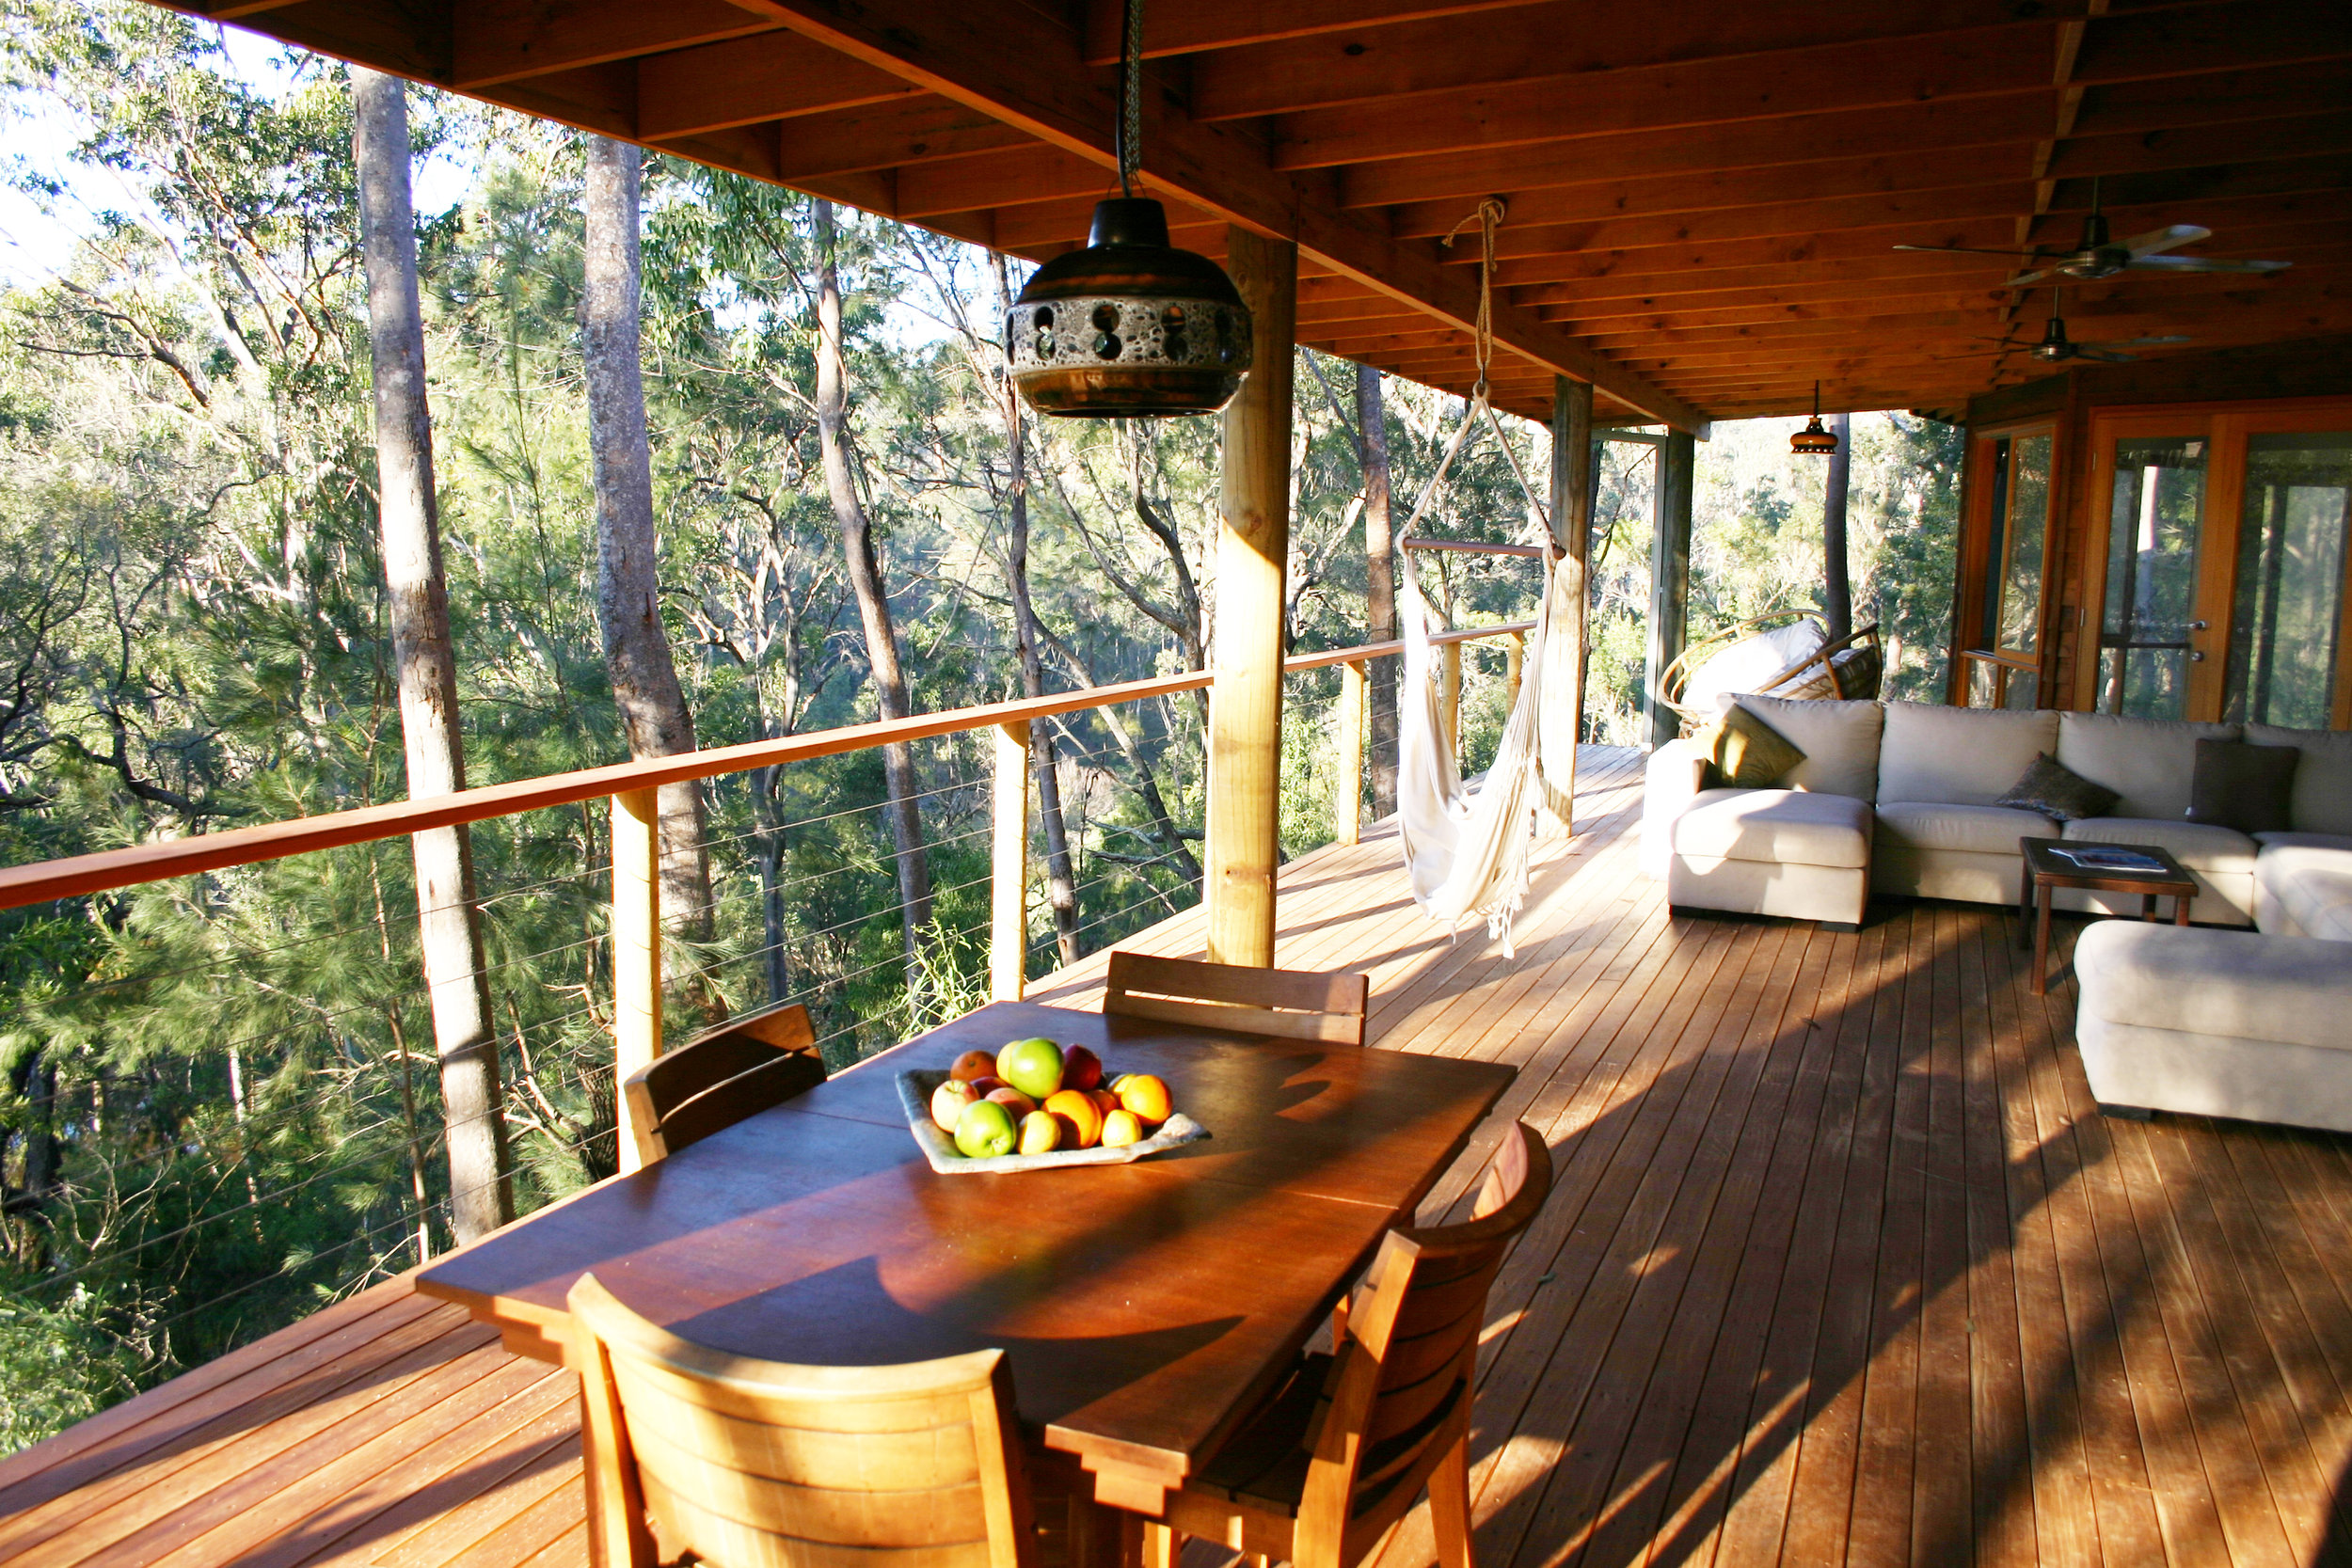 Image supplied by  Billabong Retreat  - see those egg rattan chairs at the back? Well, they were the most comfy chair/bed I've ever sat on and that was literally my dedicated spot during my stay.